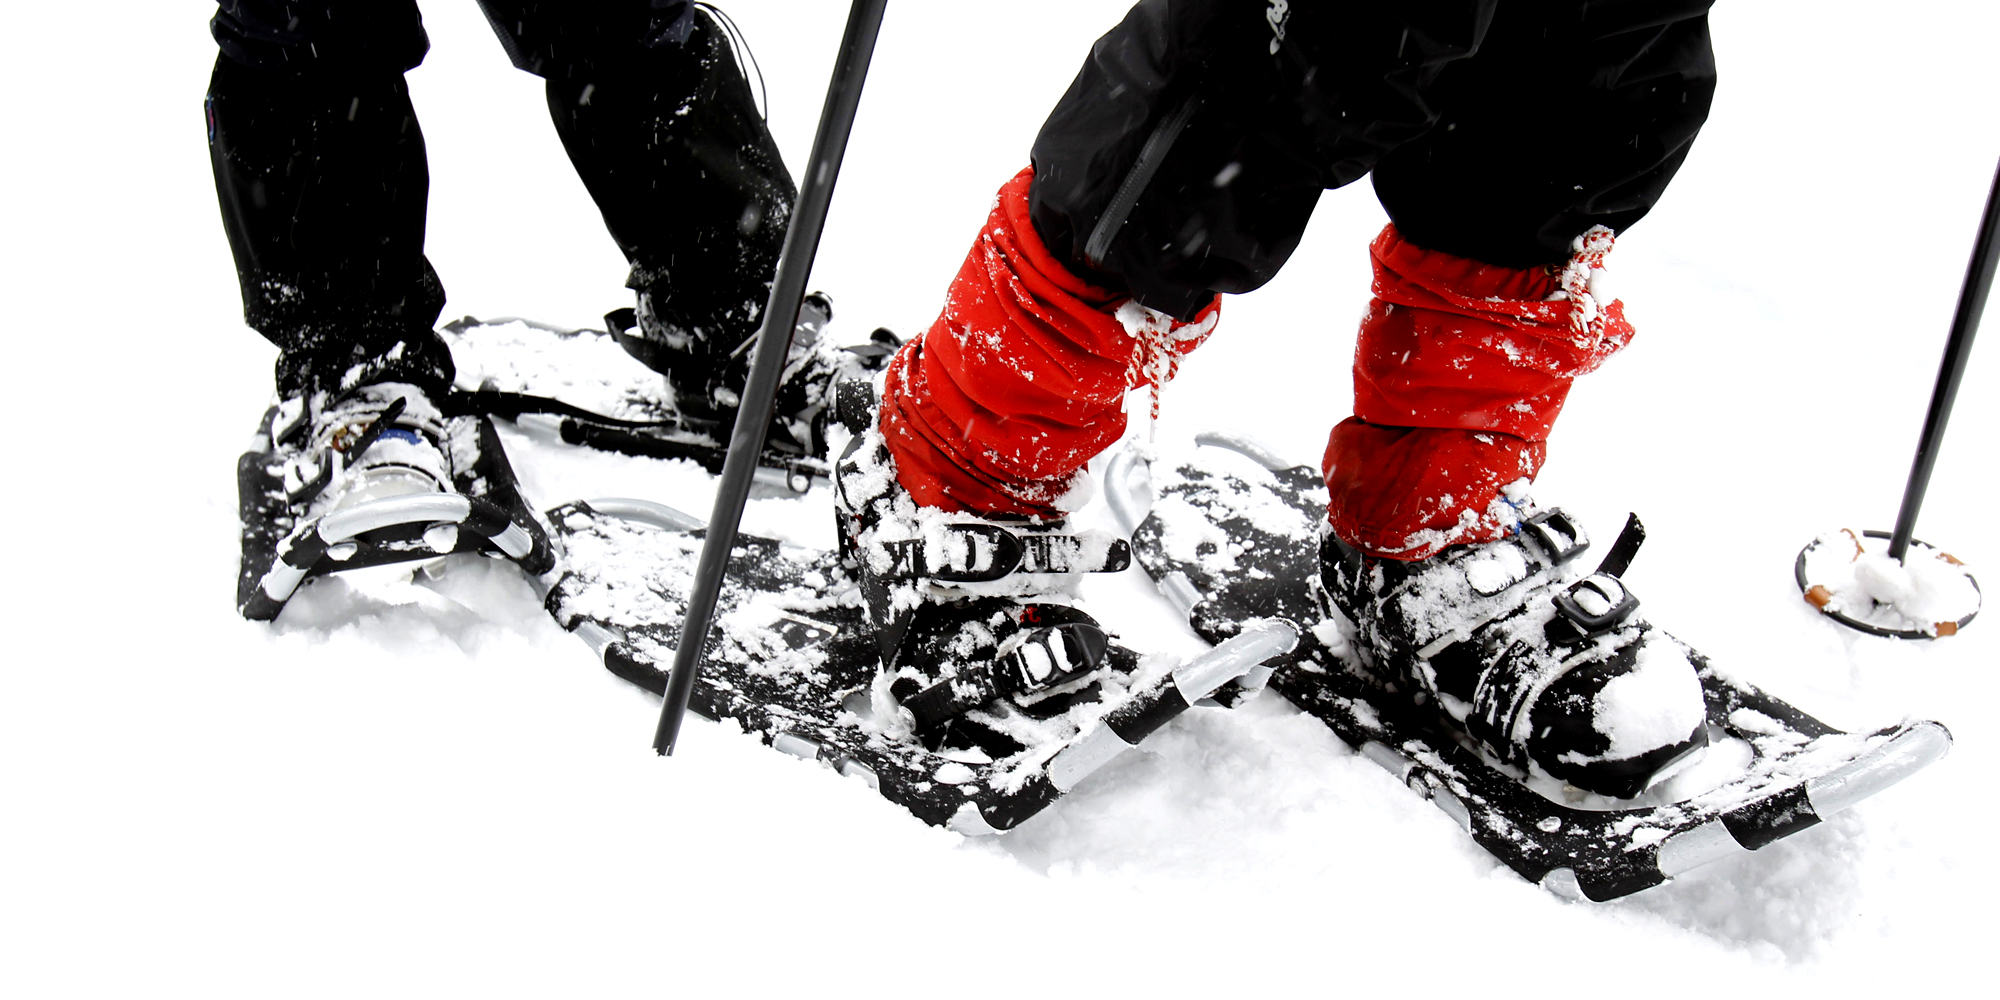 Snowshoeing at Mokk Farm - 2 pair snowshoe clad feet in the snow. Copyright: Mokk Gård - L A Holme